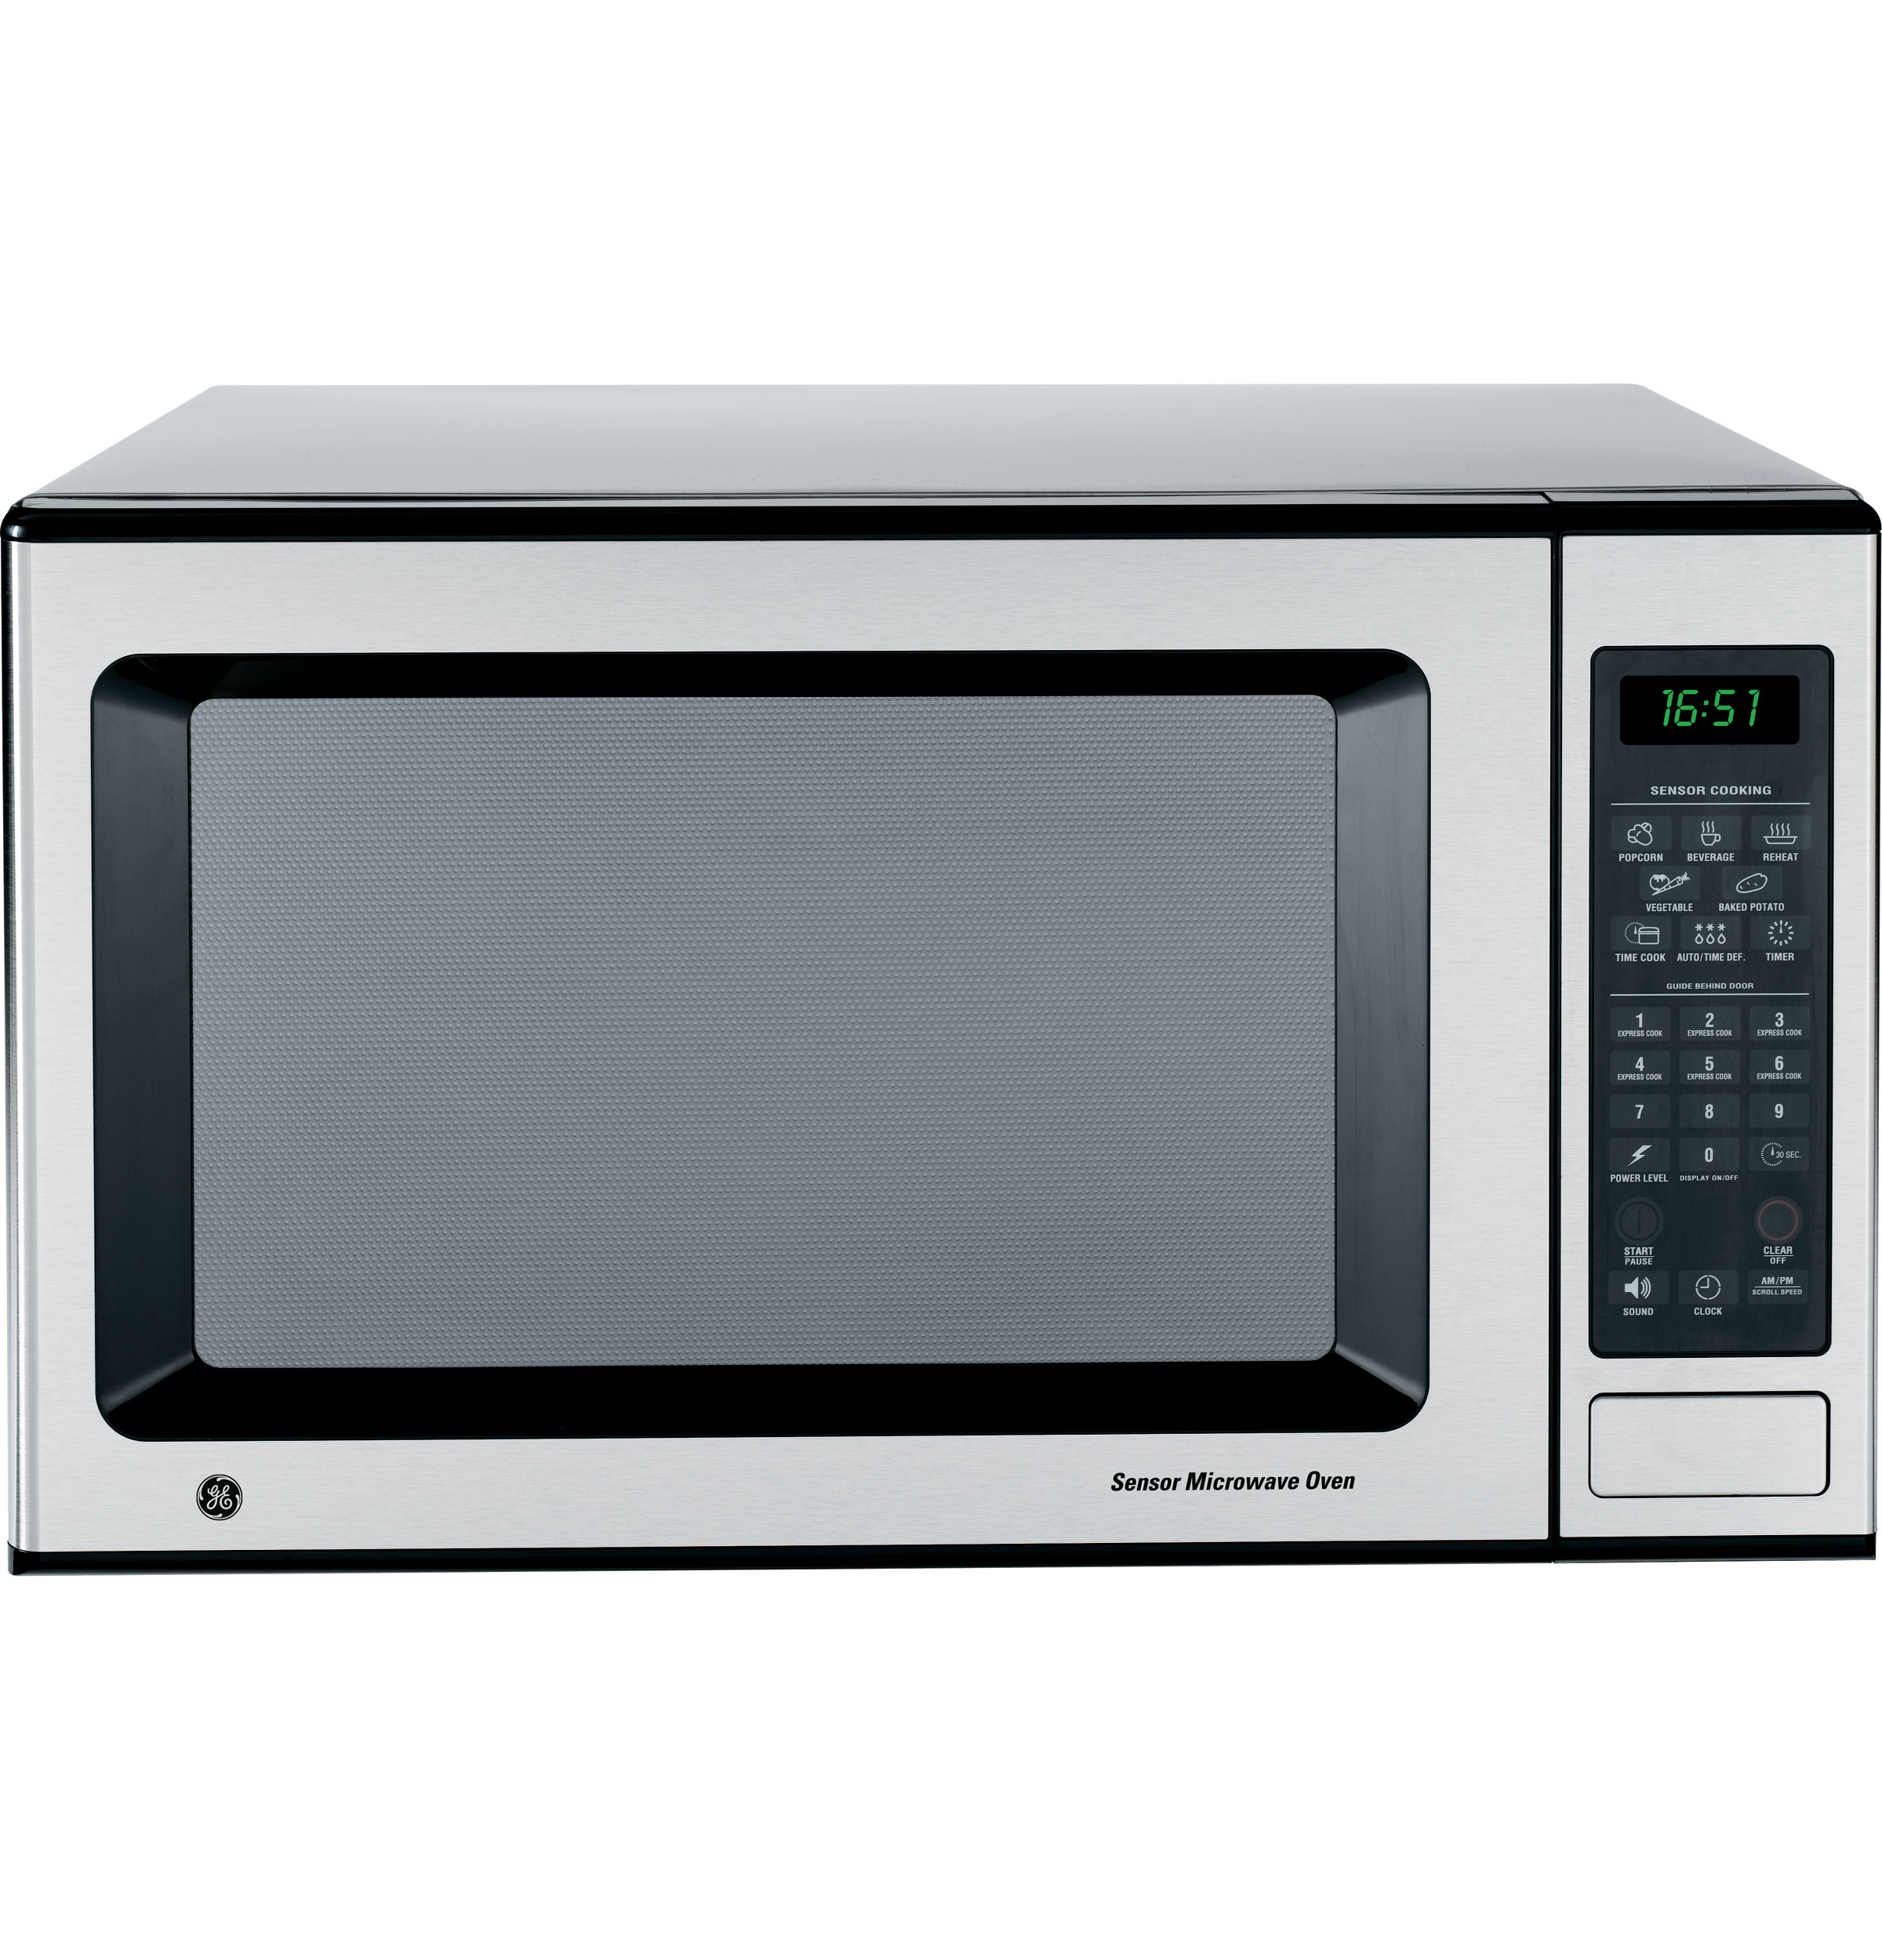 ... Cu. Ft. Capacity Countertop Microwave Oven - The Monogram Collection